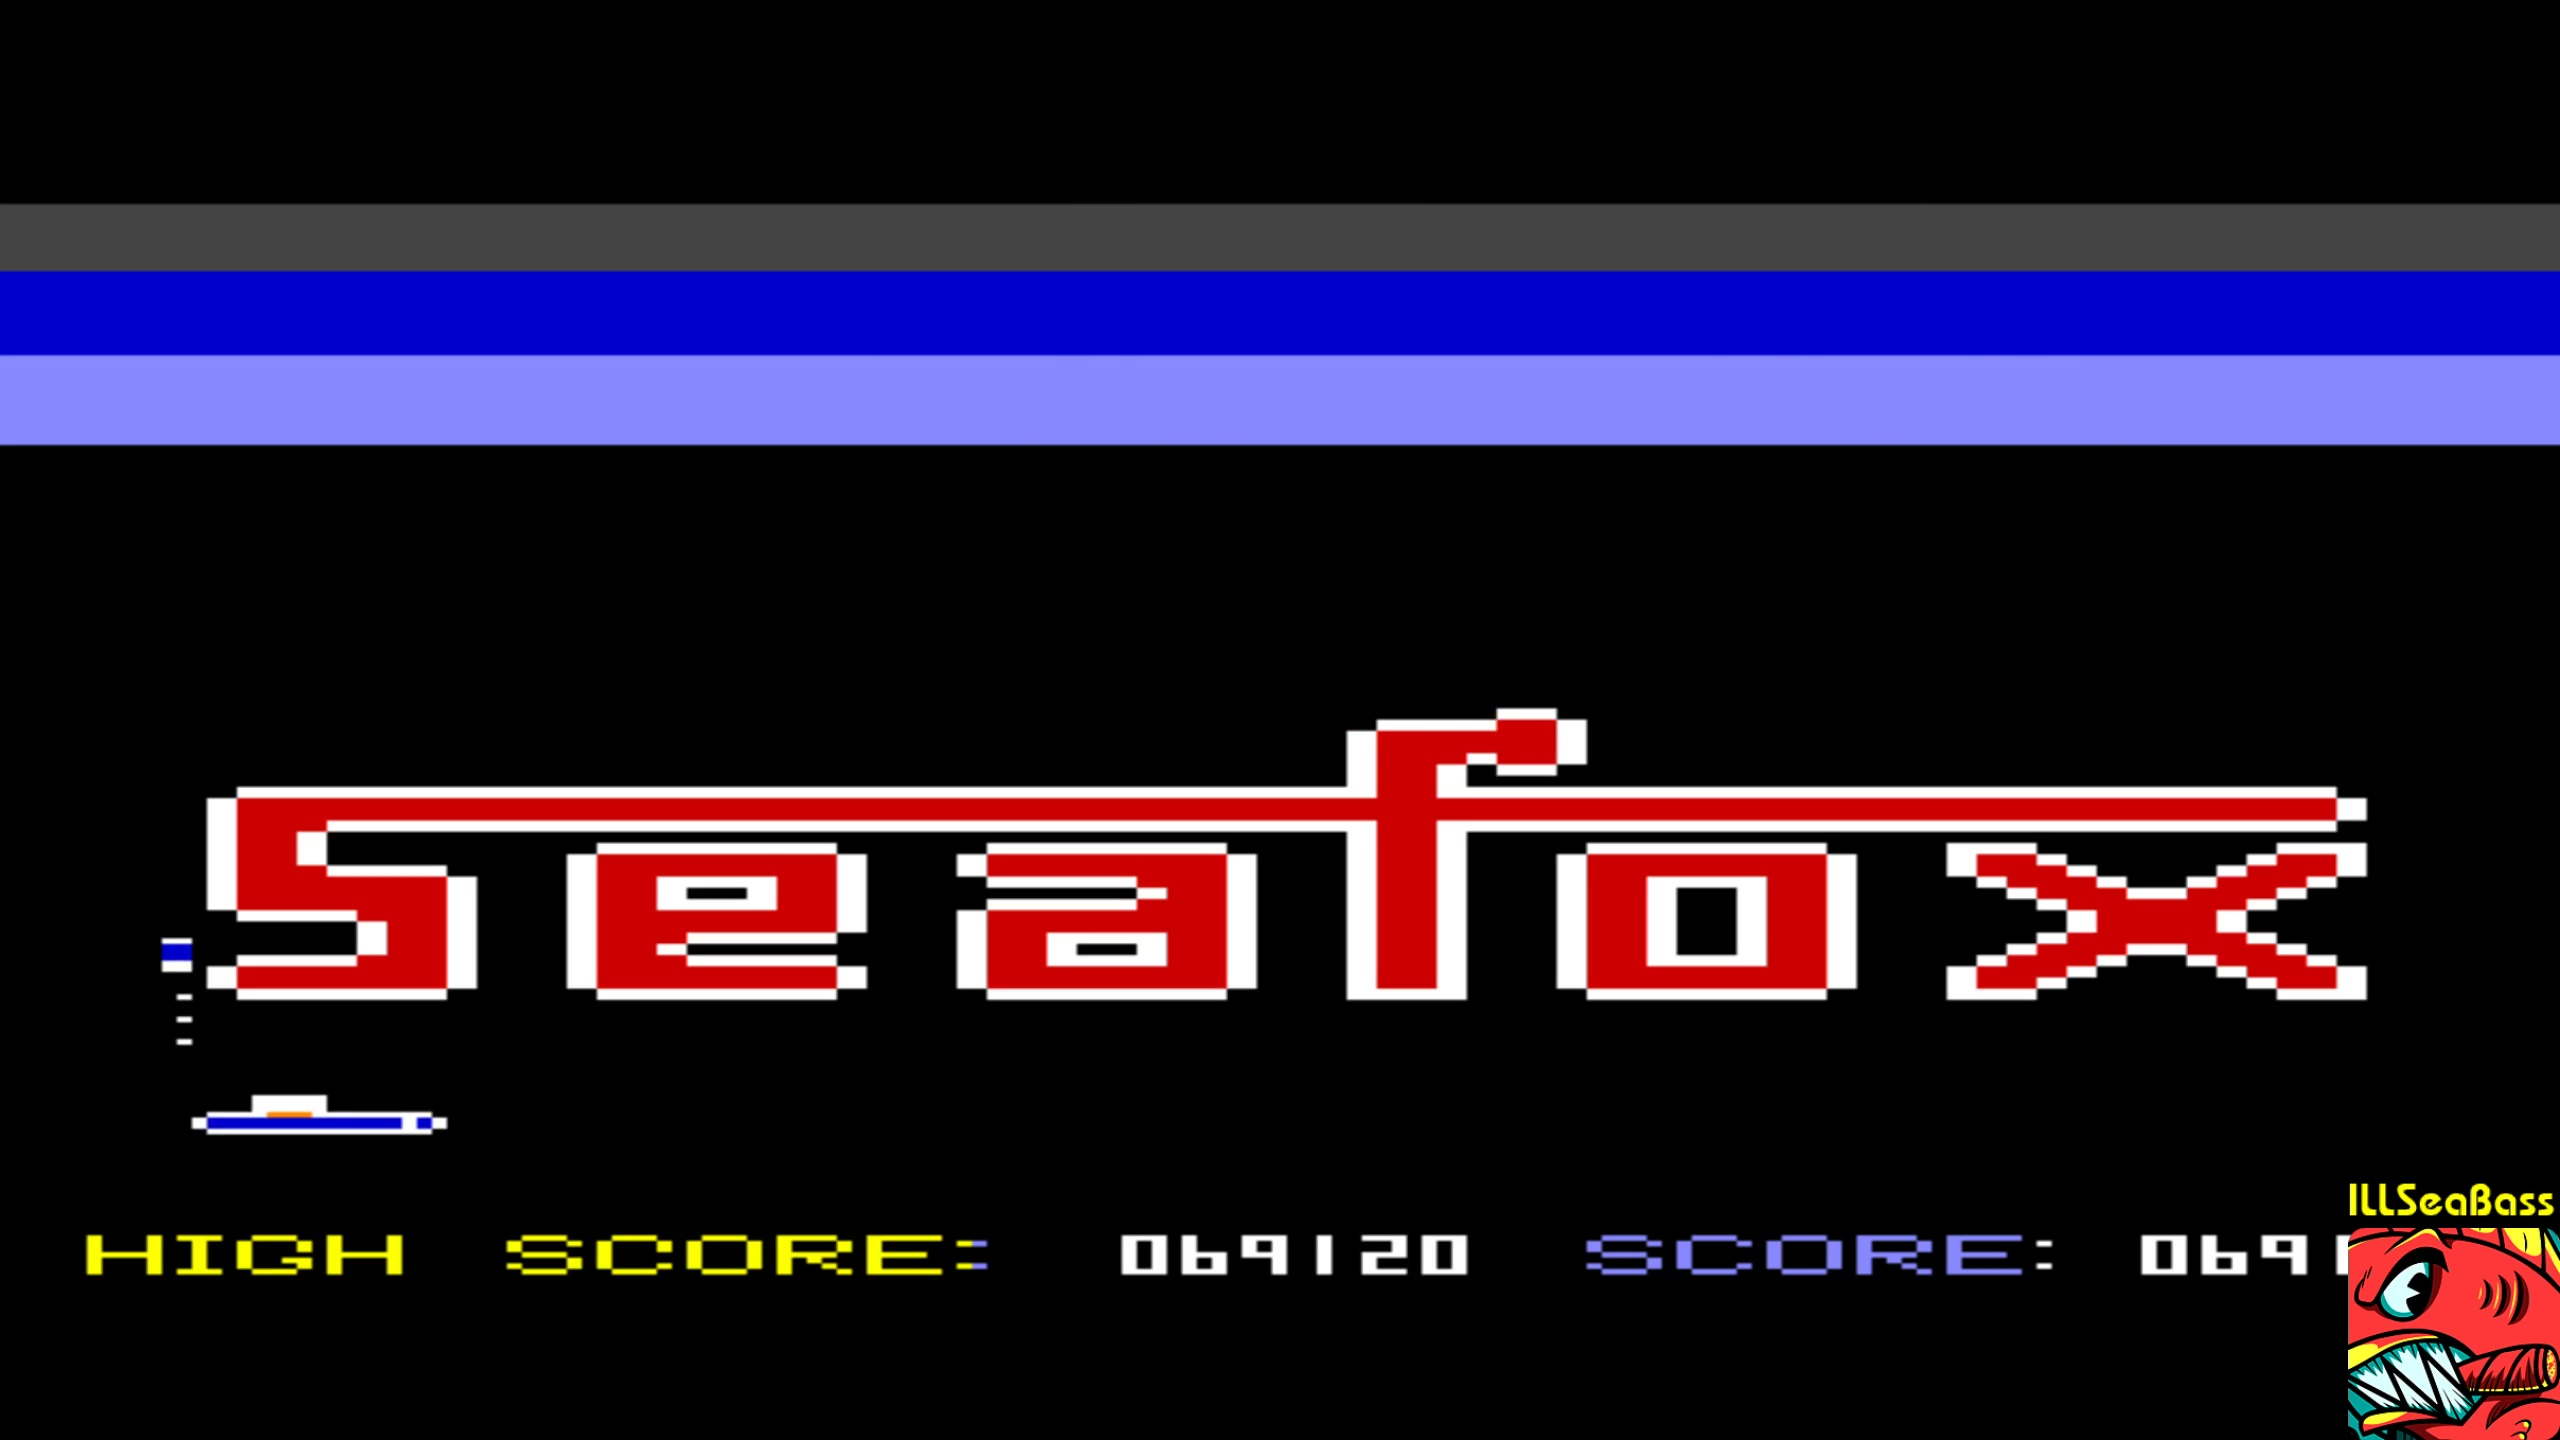 ILLSeaBass: Seafox (Commodore 64 Emulated) 69,120 points on 2018-02-24 23:04:57